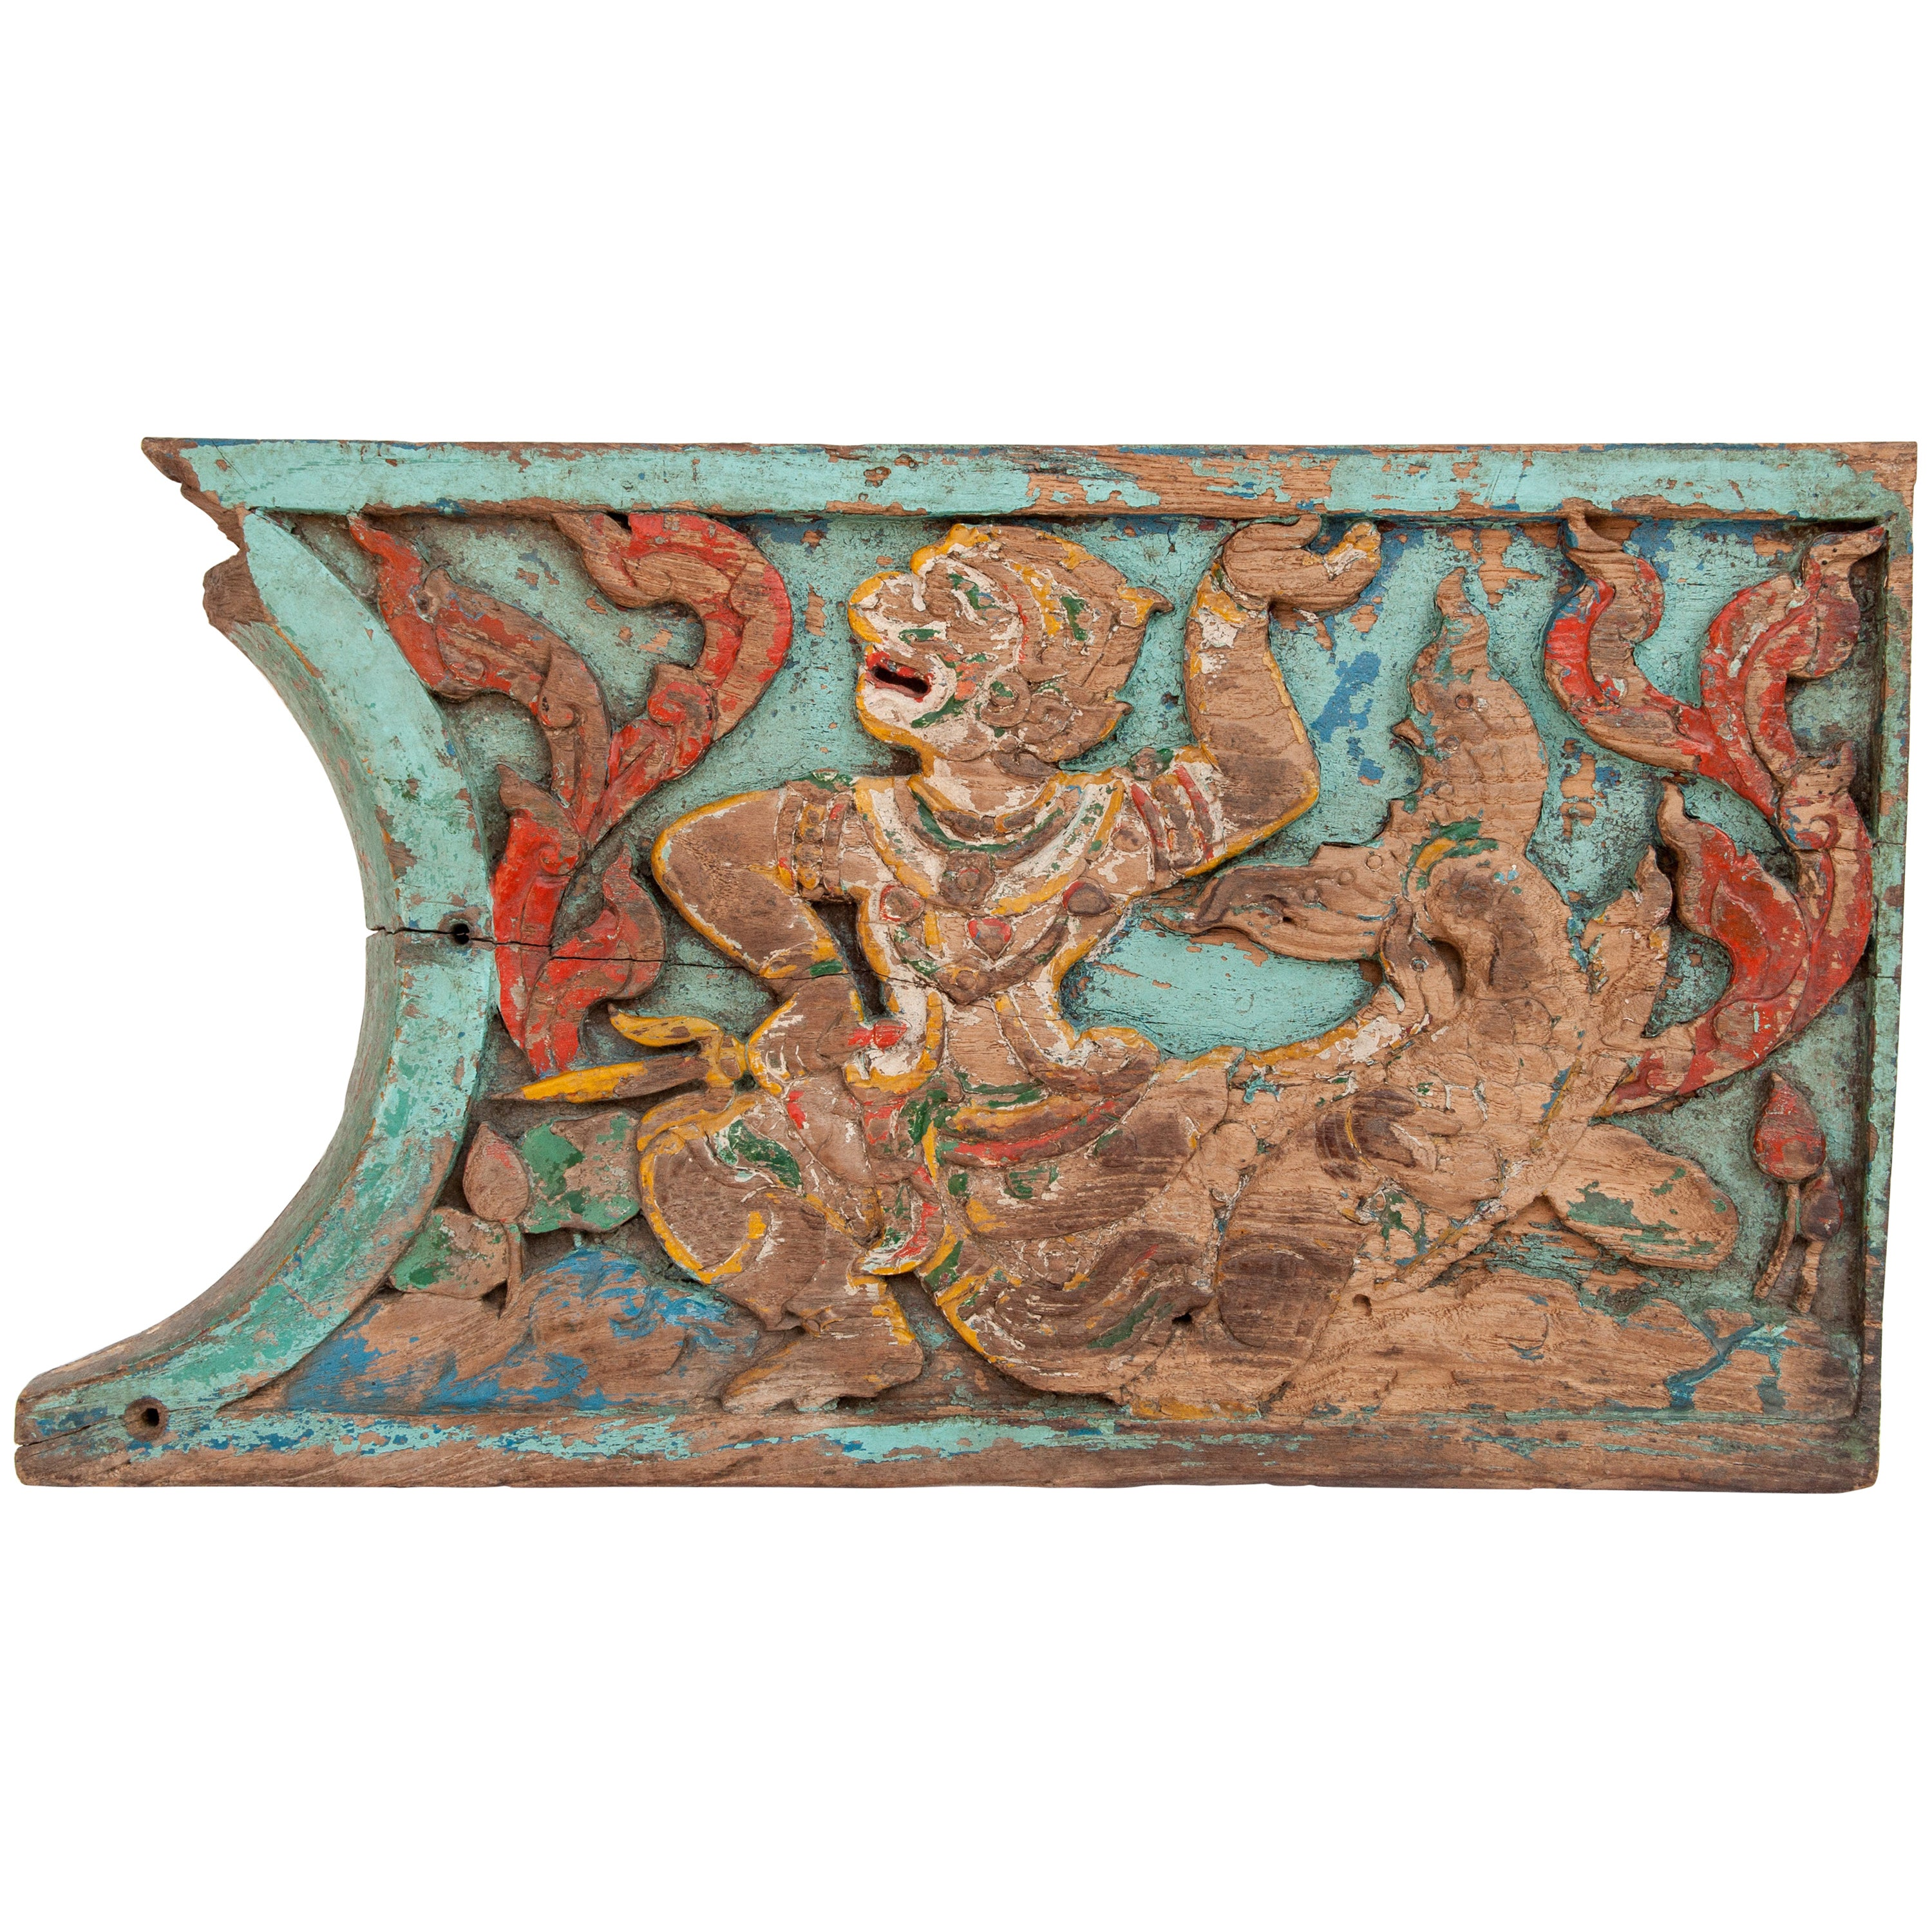 Vintage Hand Carved Panel from Thailand, Hanuman Motif, Mid-20th Century